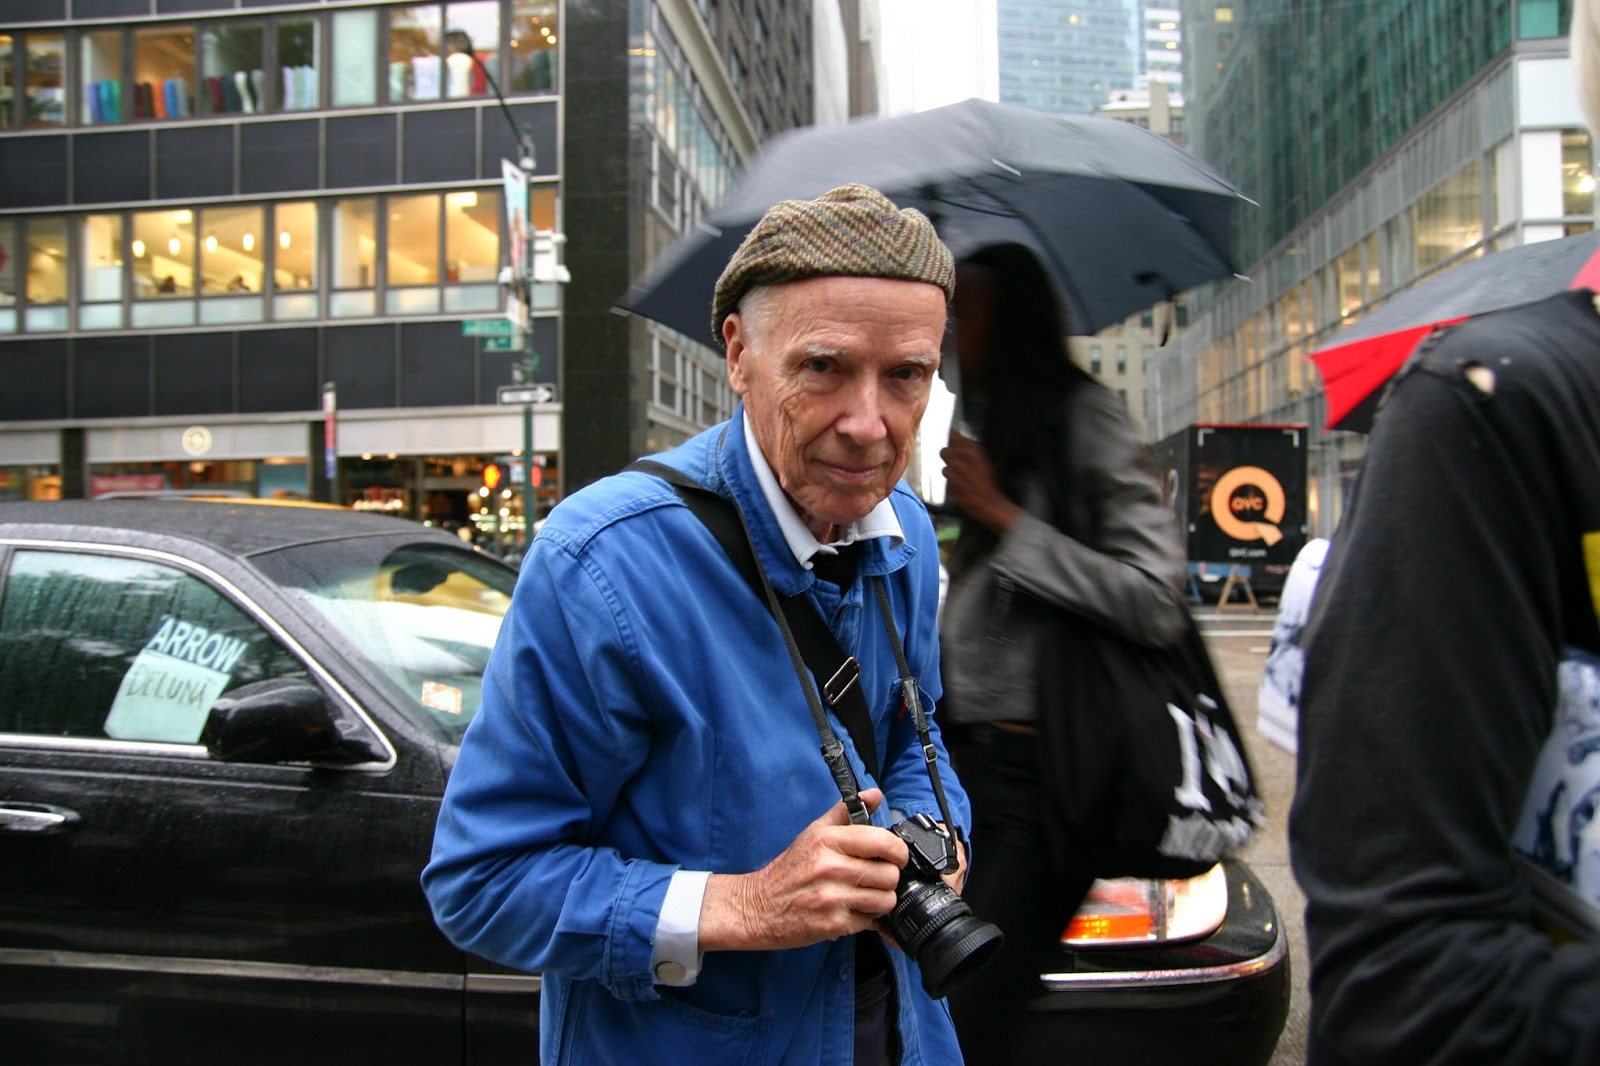 Bill Cunningham, Legend of Fashion Photography Passed